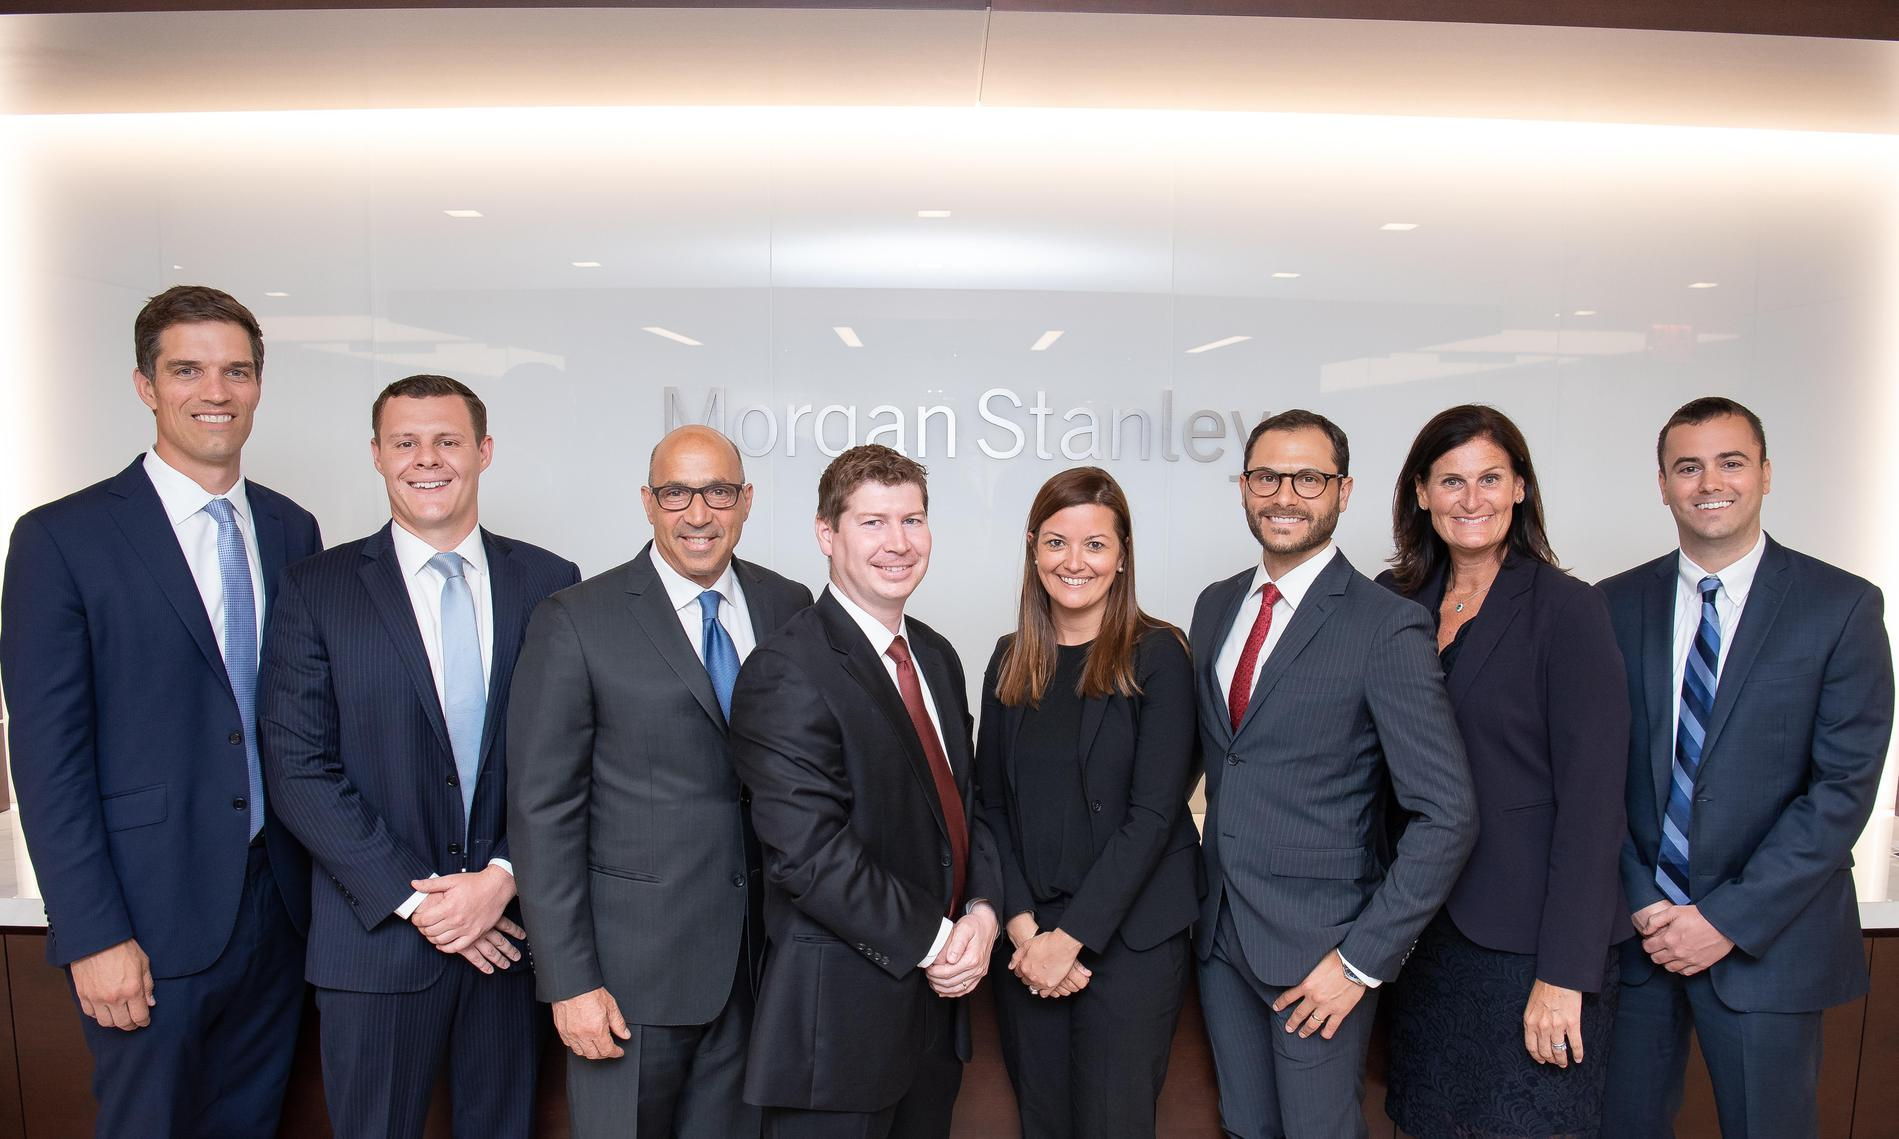 Morgan stanley investment management new york guglietti brothers investments limited